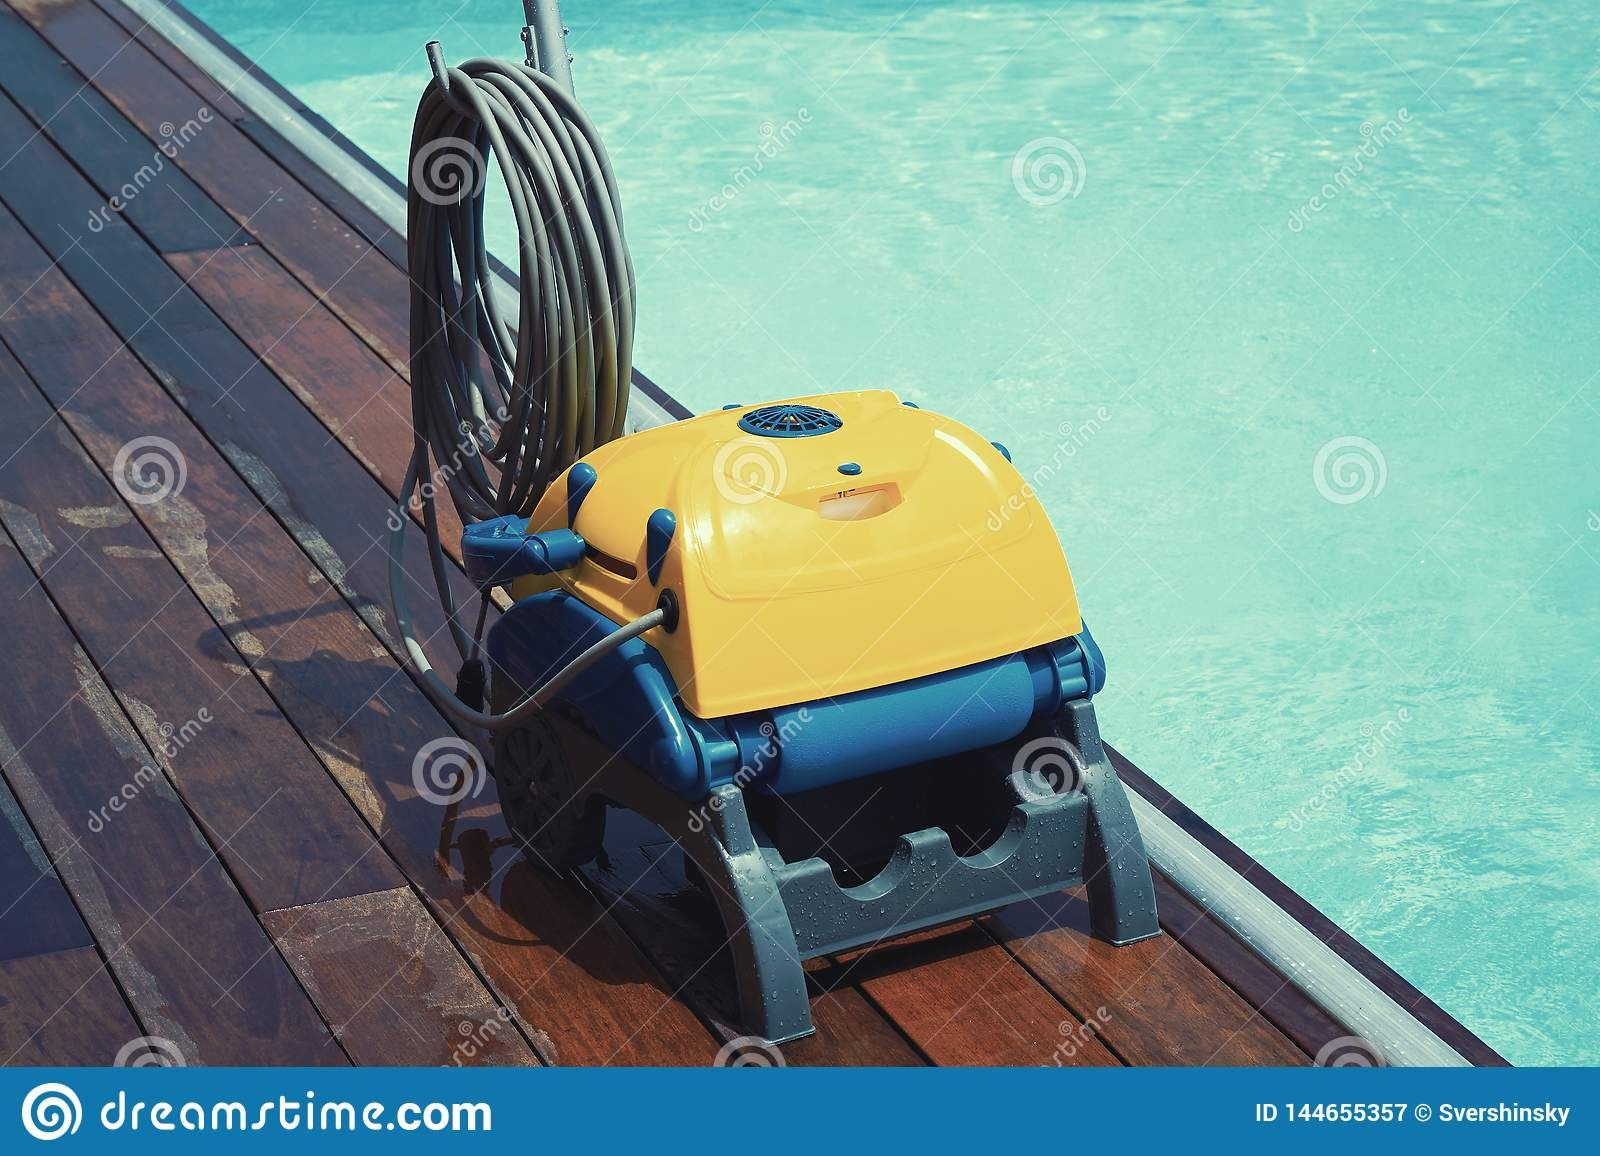 Best Automatic Pool Cleaners In 2020 Automatic Pool Cleaner Best Automatic Pool Cleaner Pool Cleaning